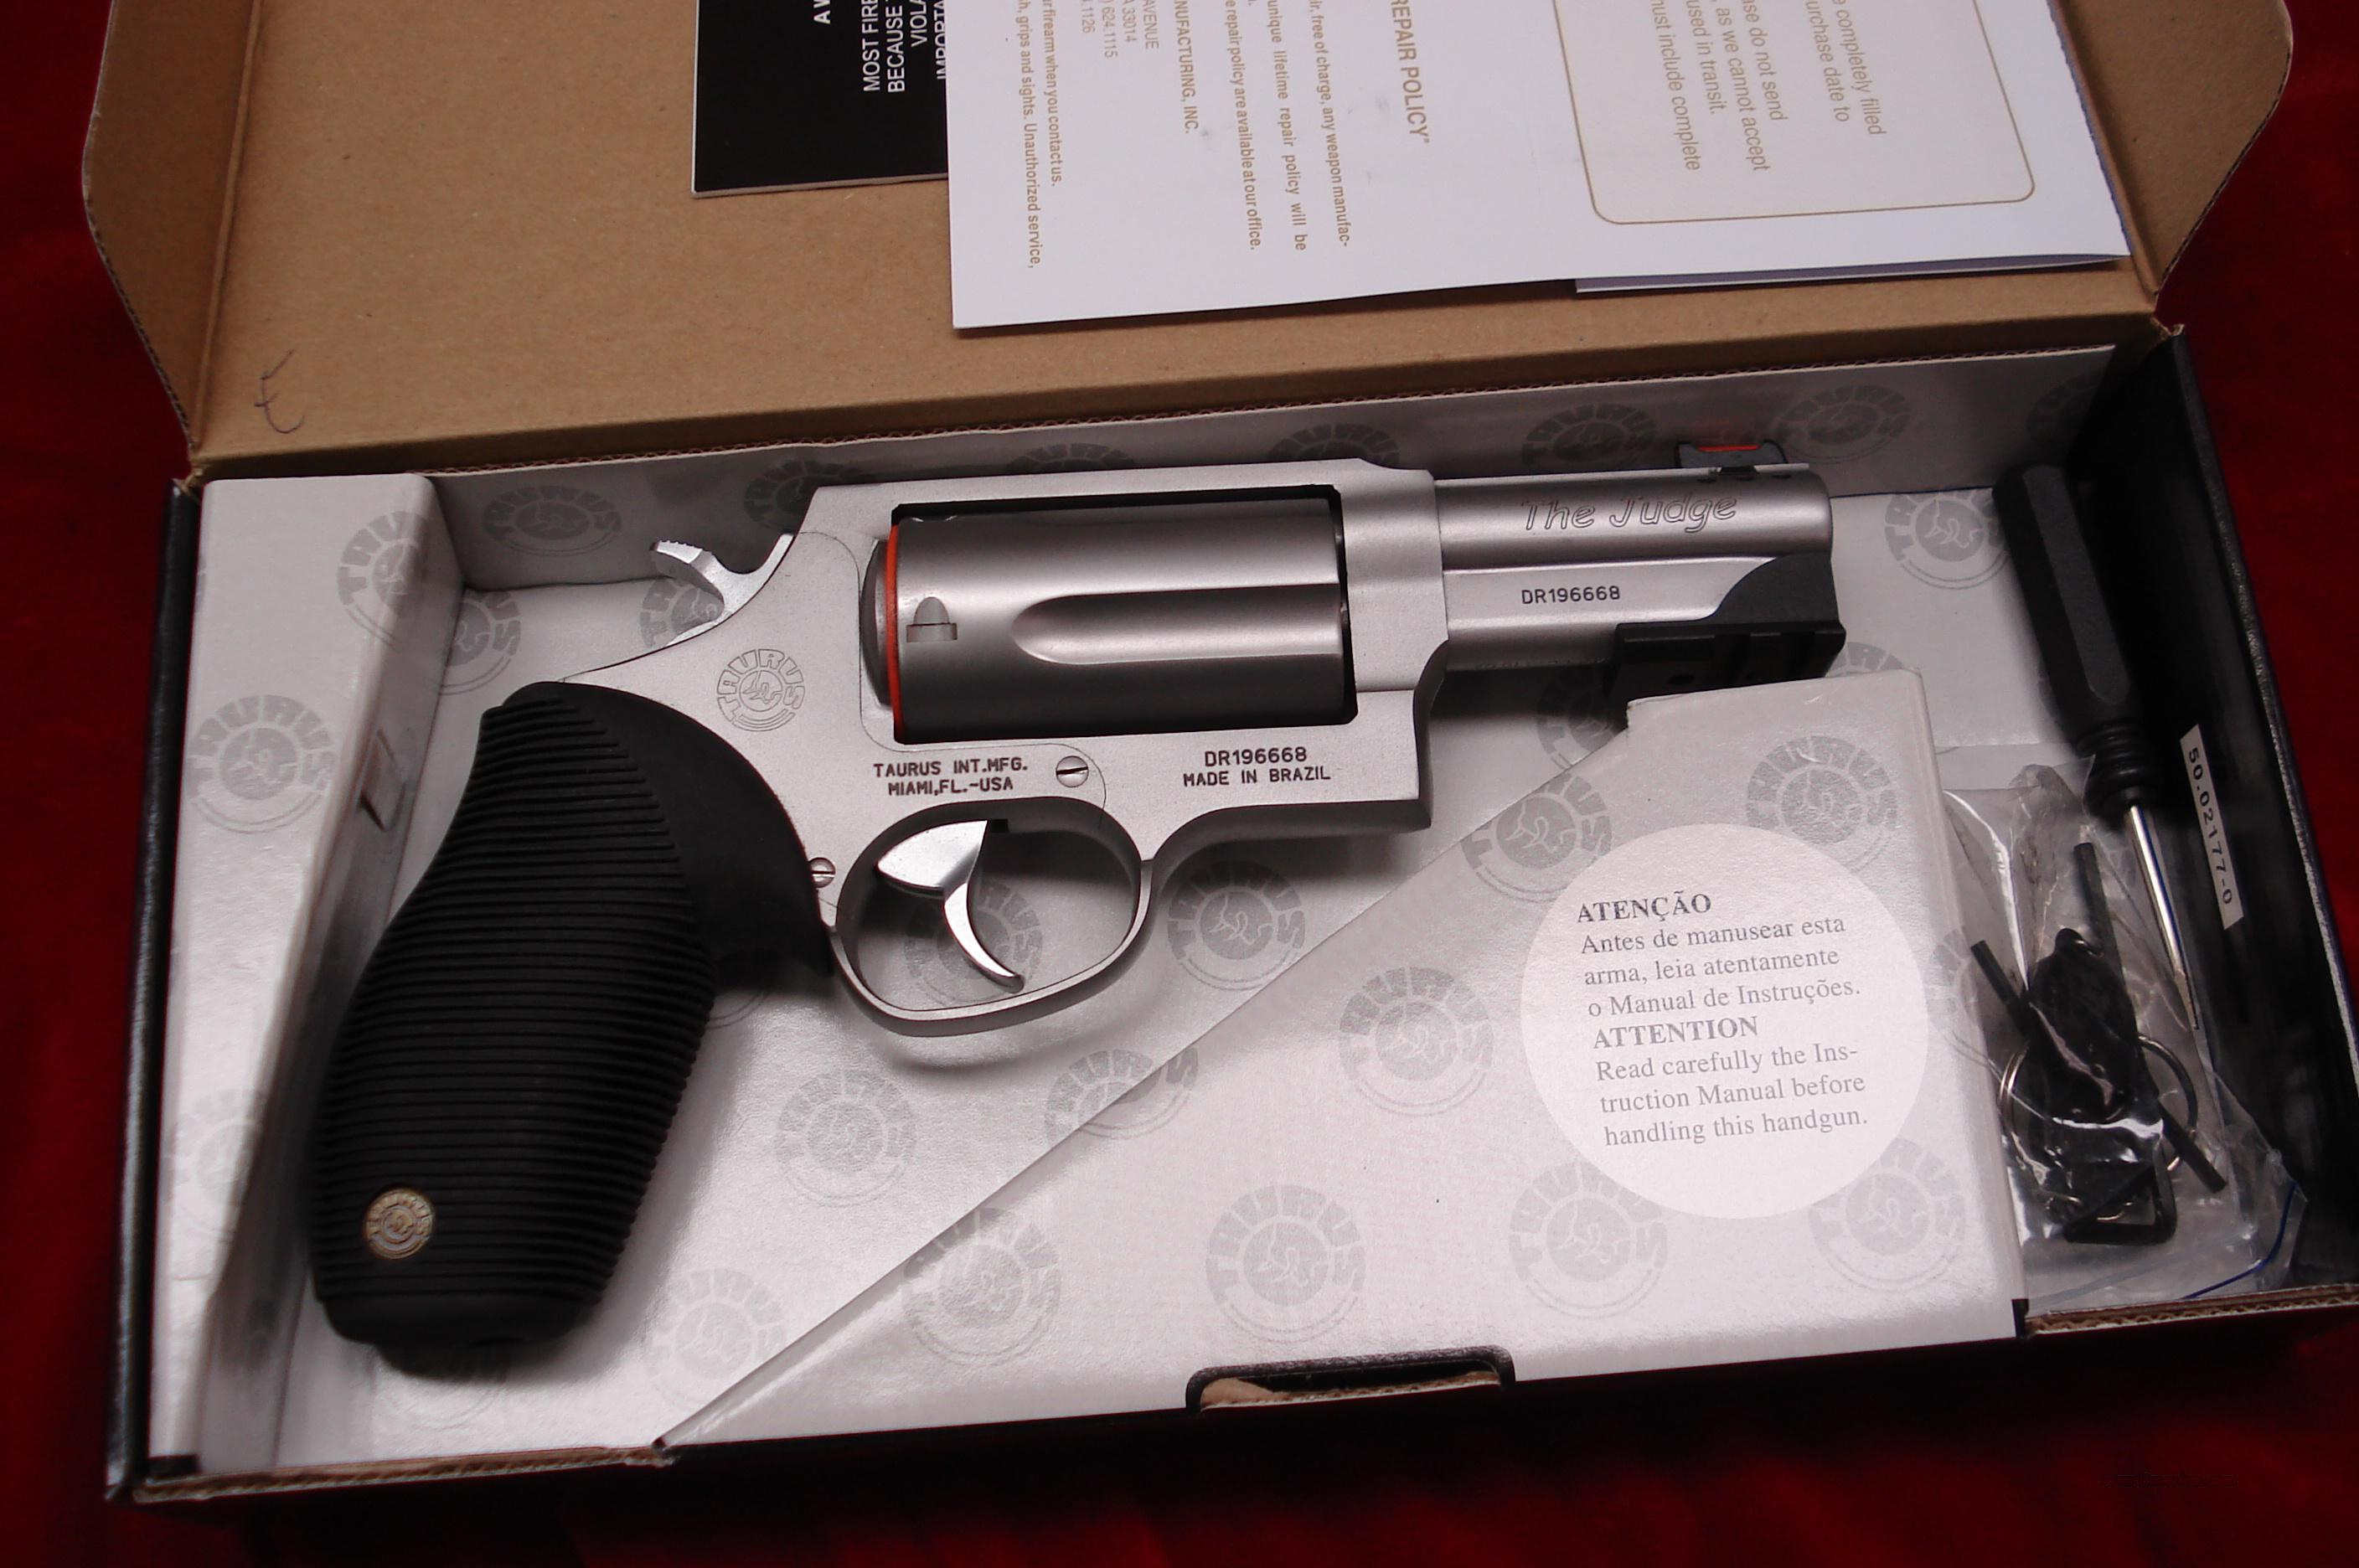 "TAURUS 4510 TRACKER 410G REVOLVER ""THE JUDGE"" 3"" STAINLESS WITH TAC RAIL NEW  Guns > Pistols > Taurus Pistols/Revolvers > Revolvers"